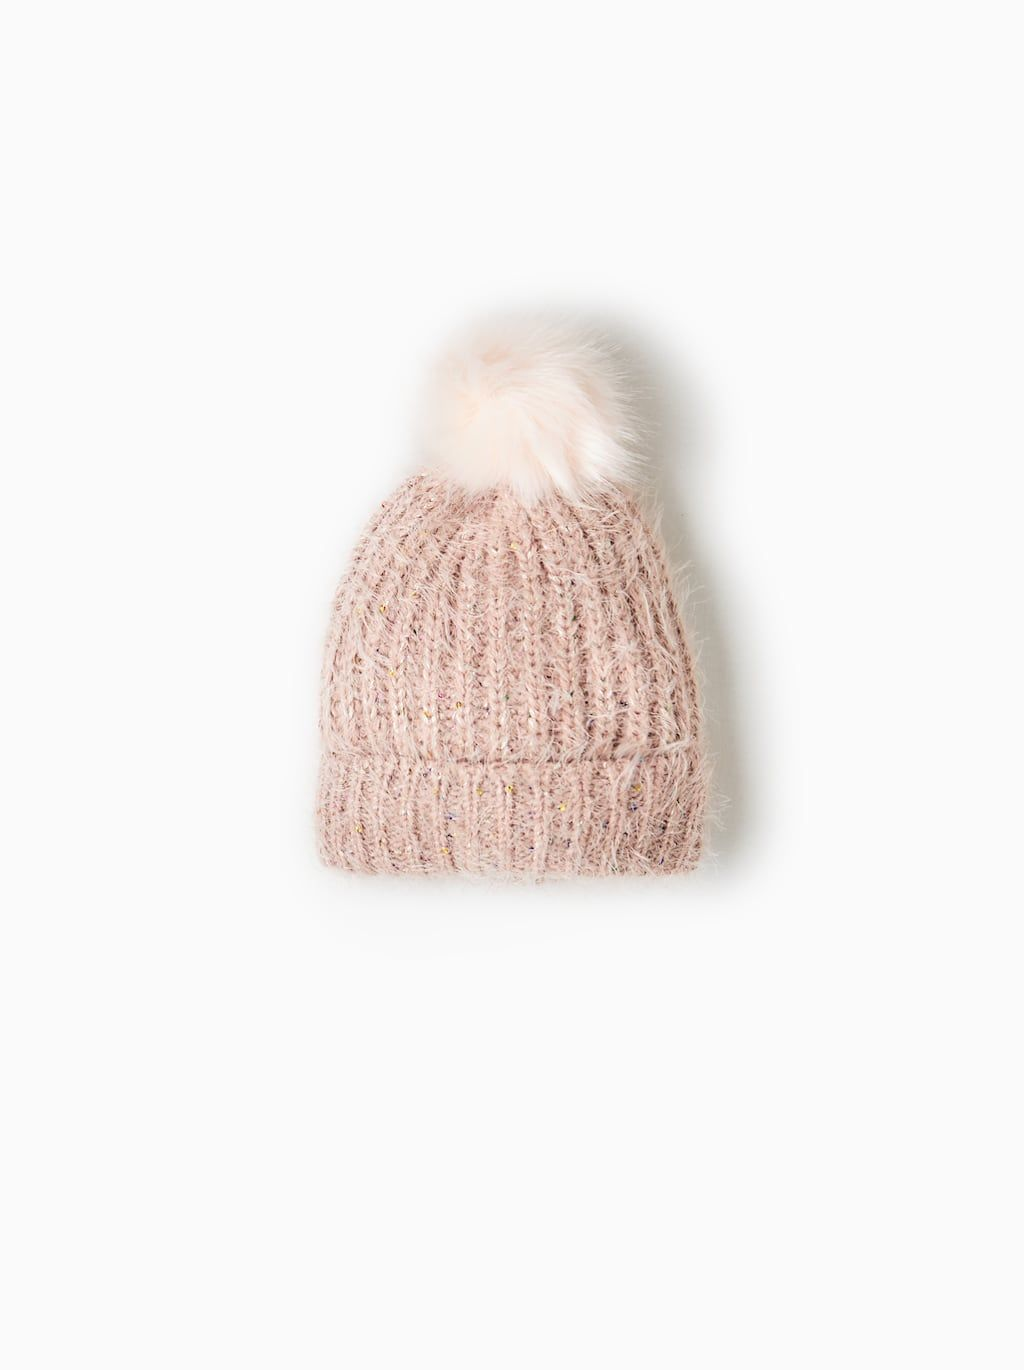 1770f0aaa78 Image 1 of HAT WITH FAUX FUR POMPOM AND SEQUINS from Zara ...